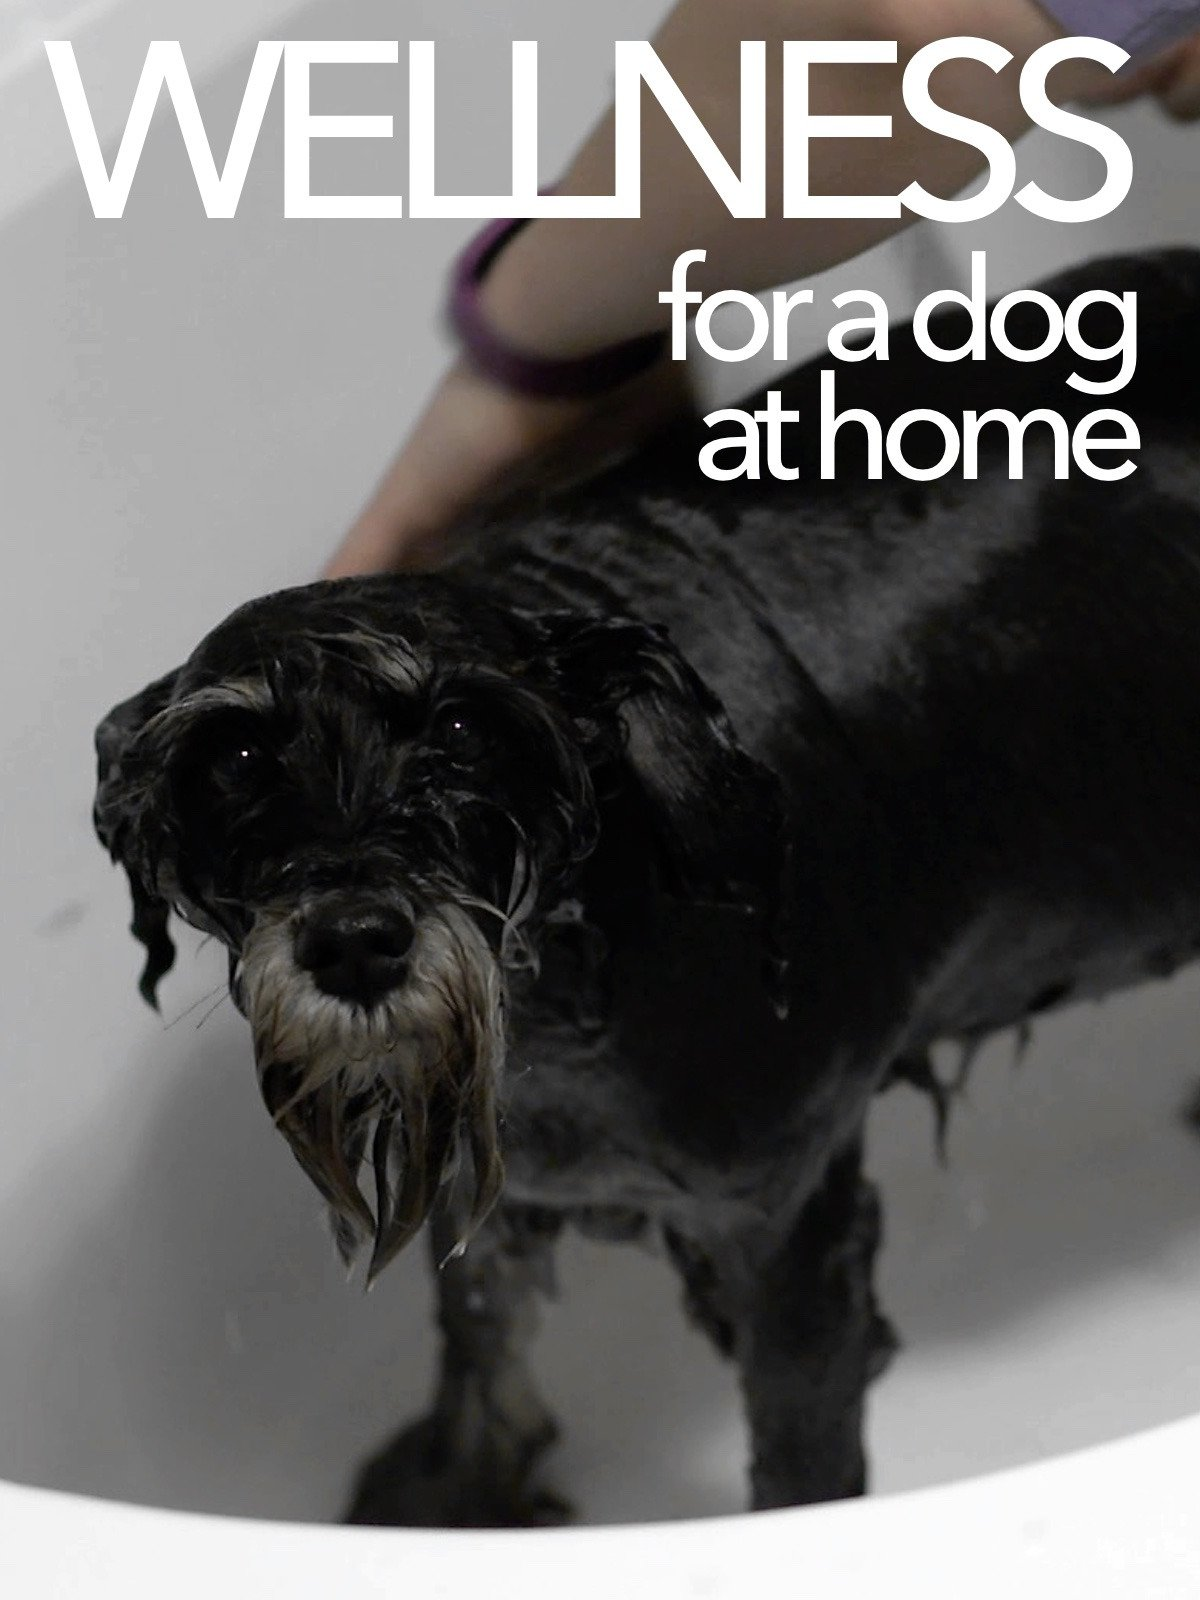 Wellness for dog at home